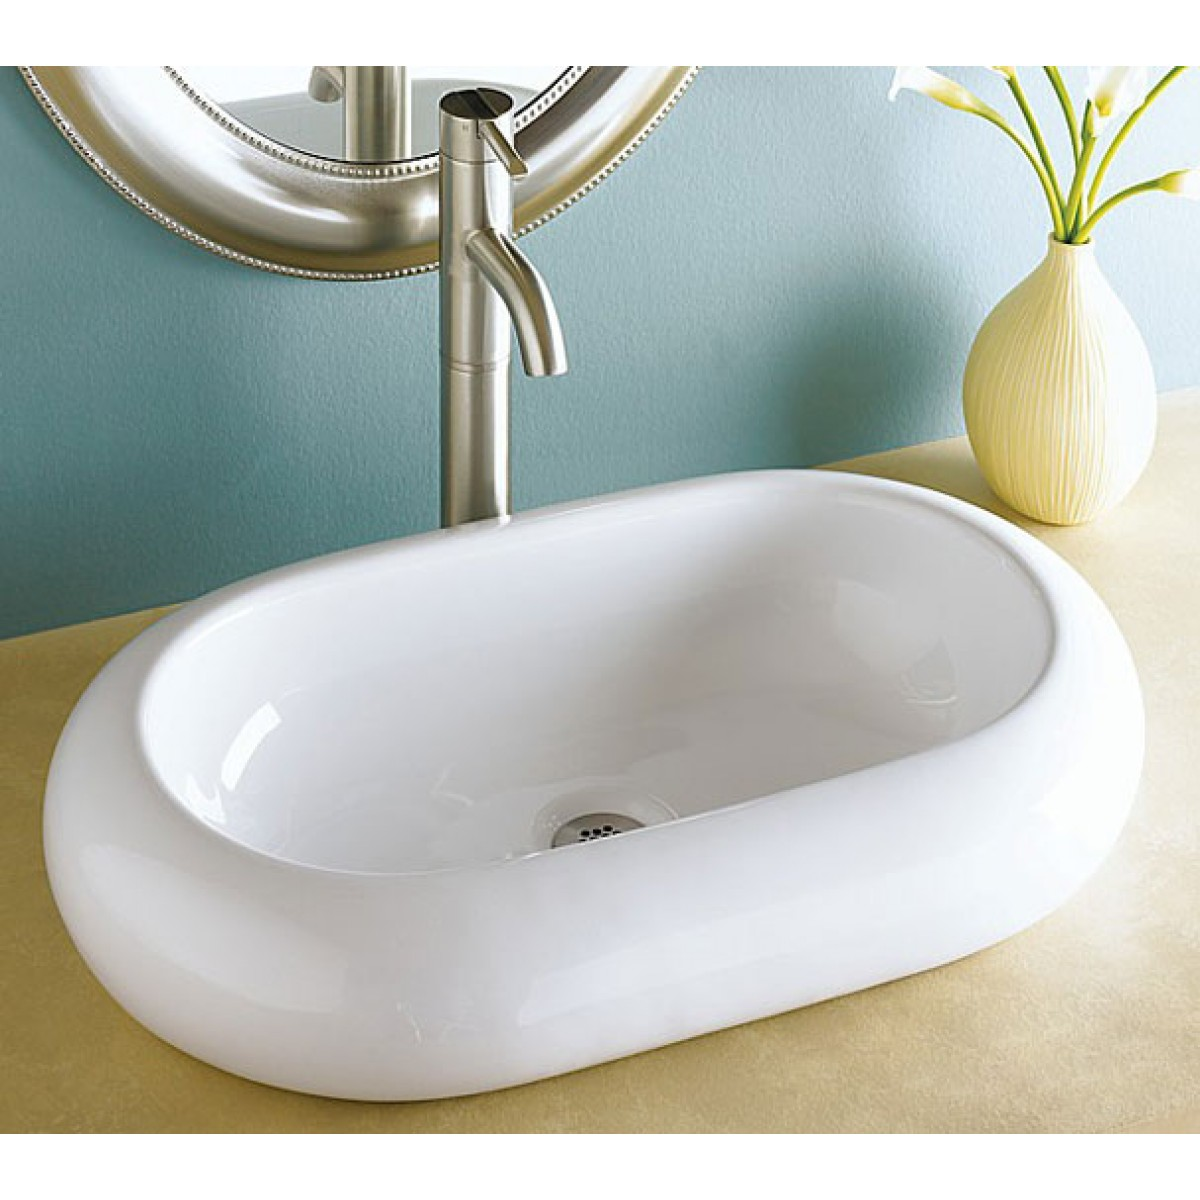 Rounded Edge Oval Porcelain Ceramic Countertop Bathroom